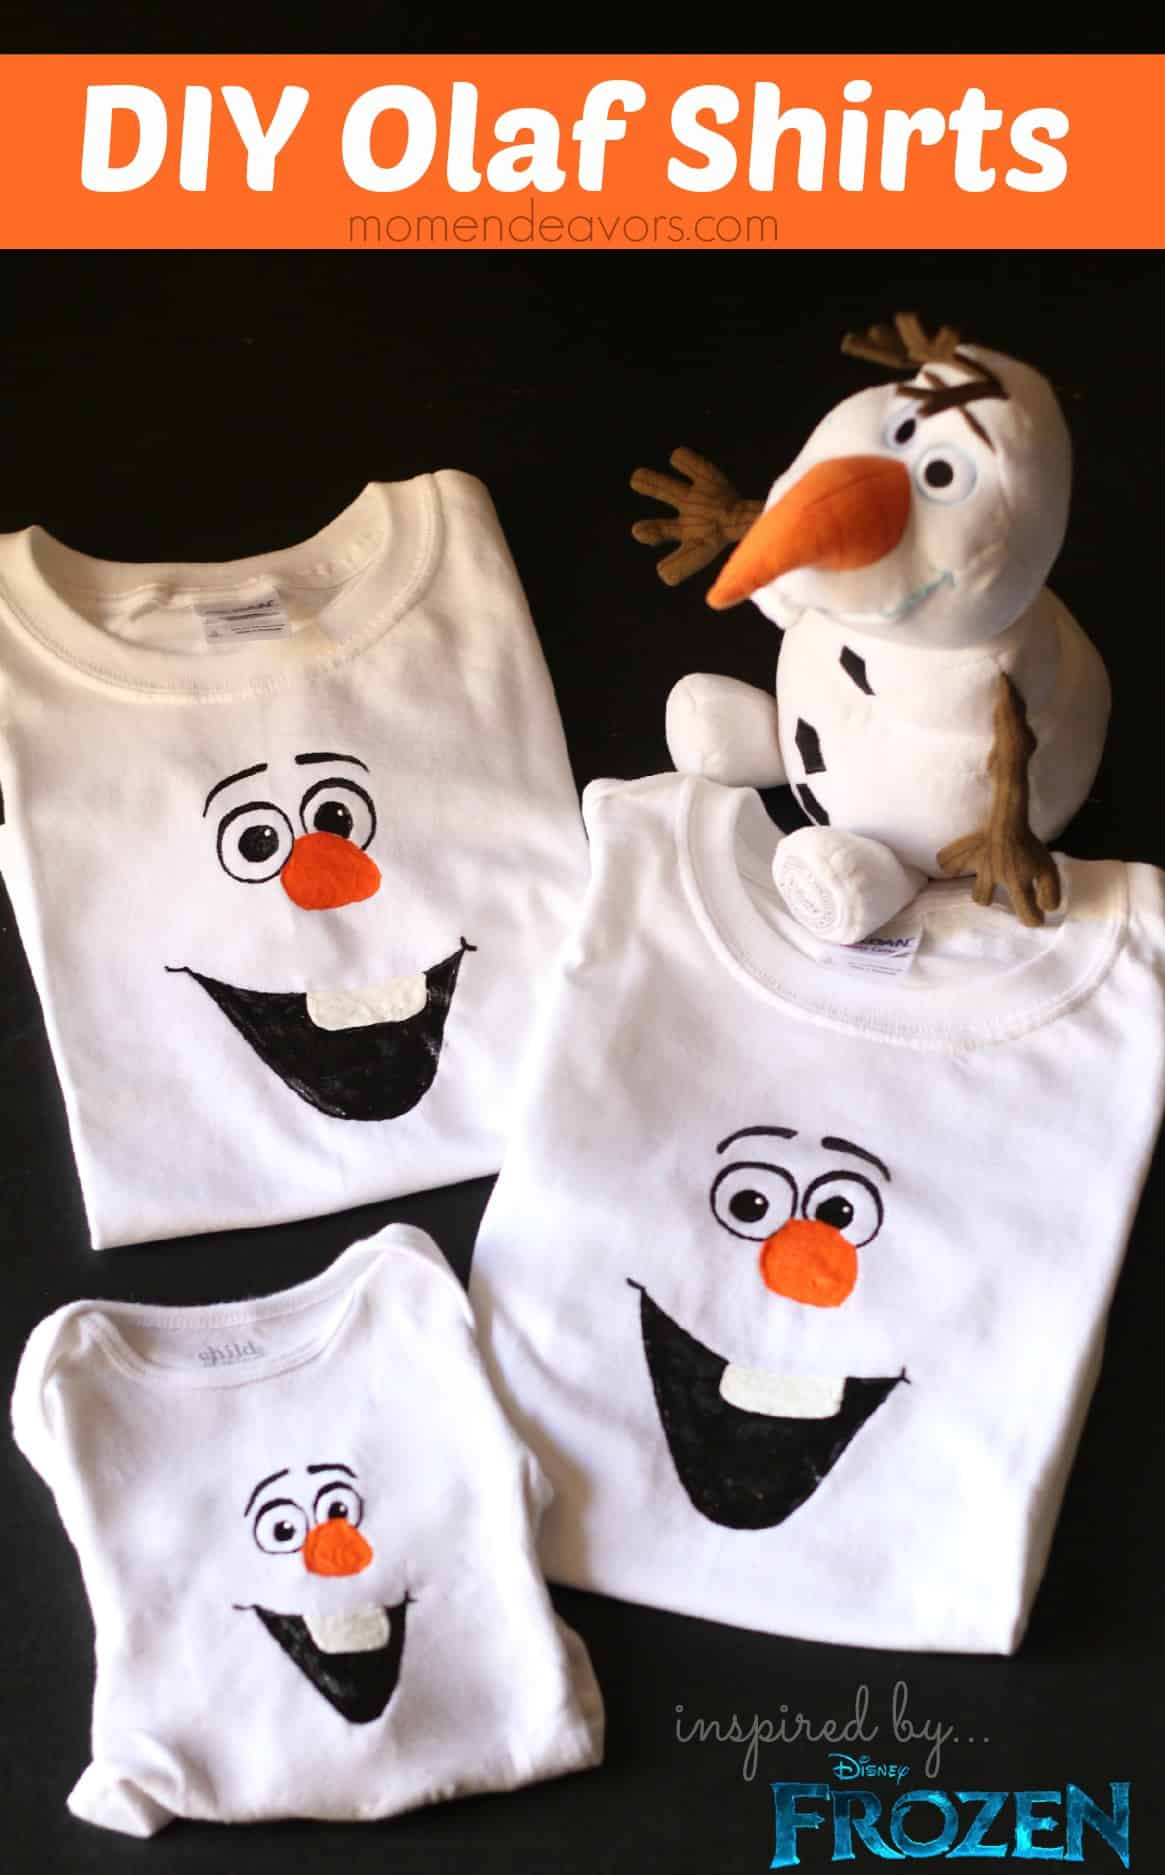 a disney delight: 13 fun kids' crafts inspired by frozen